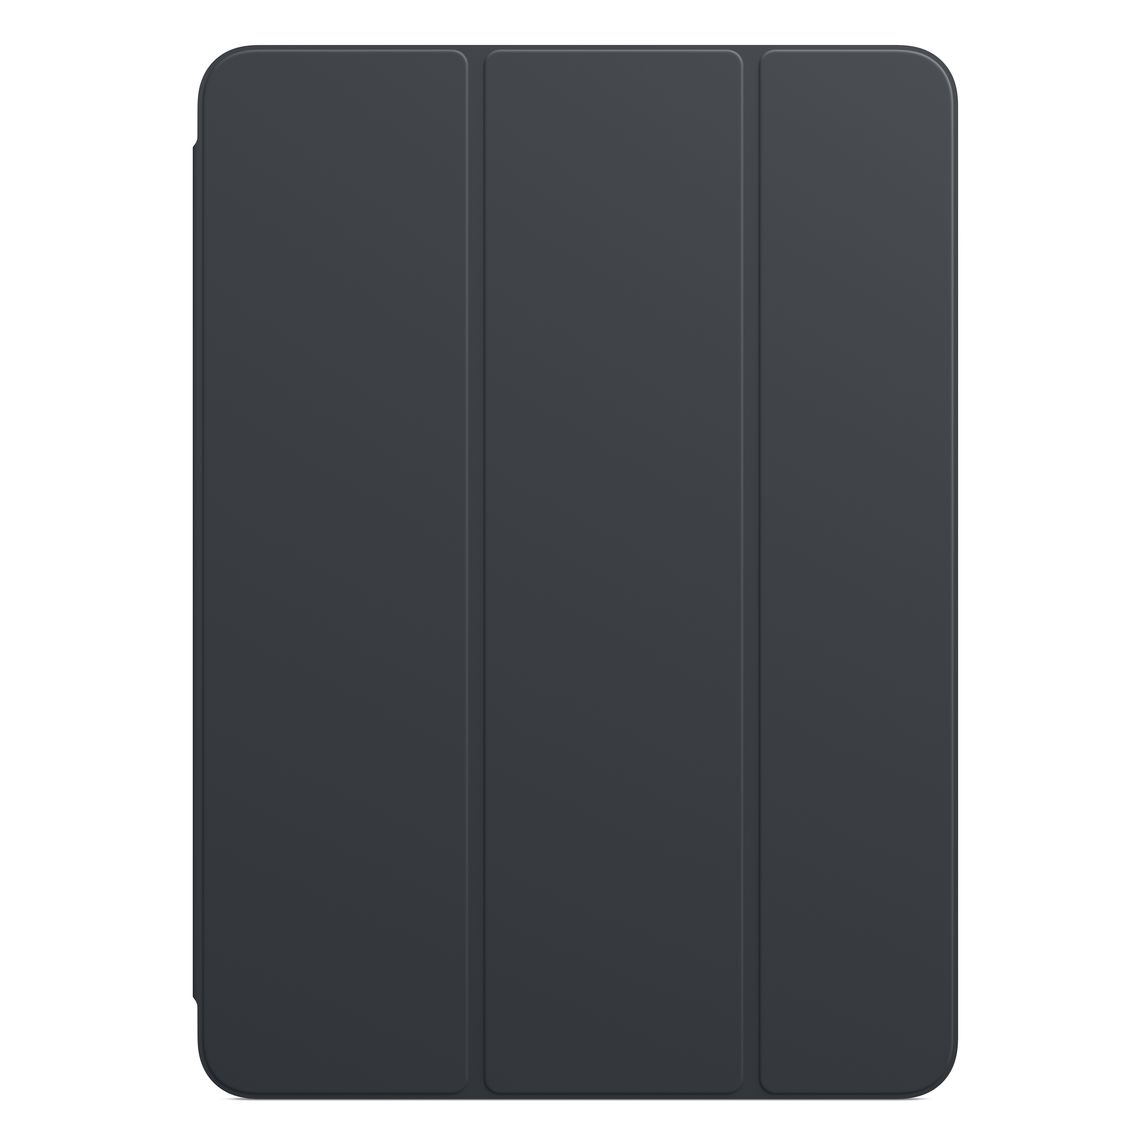 promo code af796 1ff81 Smart Folio for 11-inch iPad Pro - Charcoal Gray